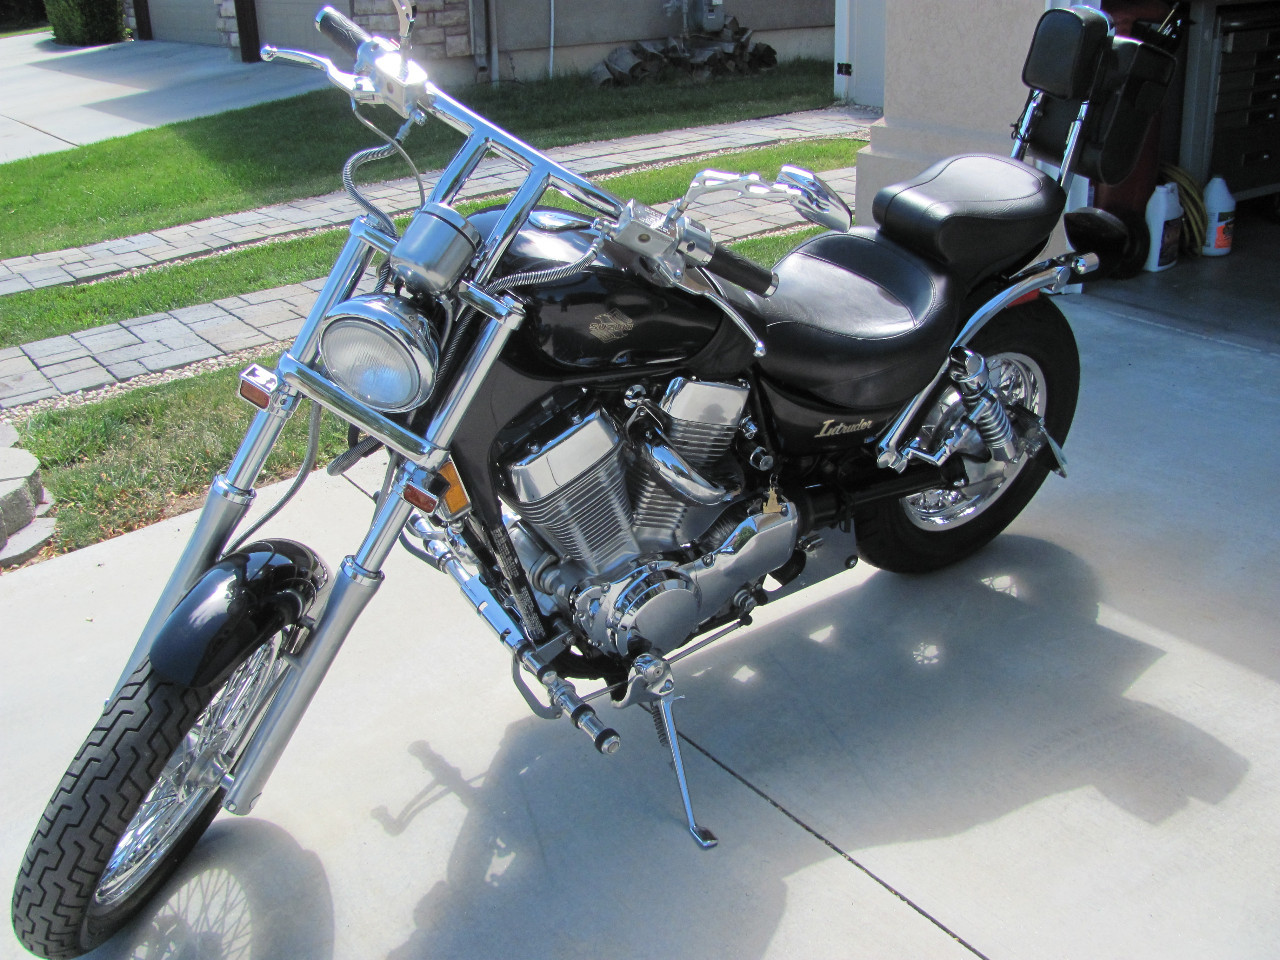 1980 Intruder For Sale - Suzuki Motorcycle,Trailers - Cycle Trader